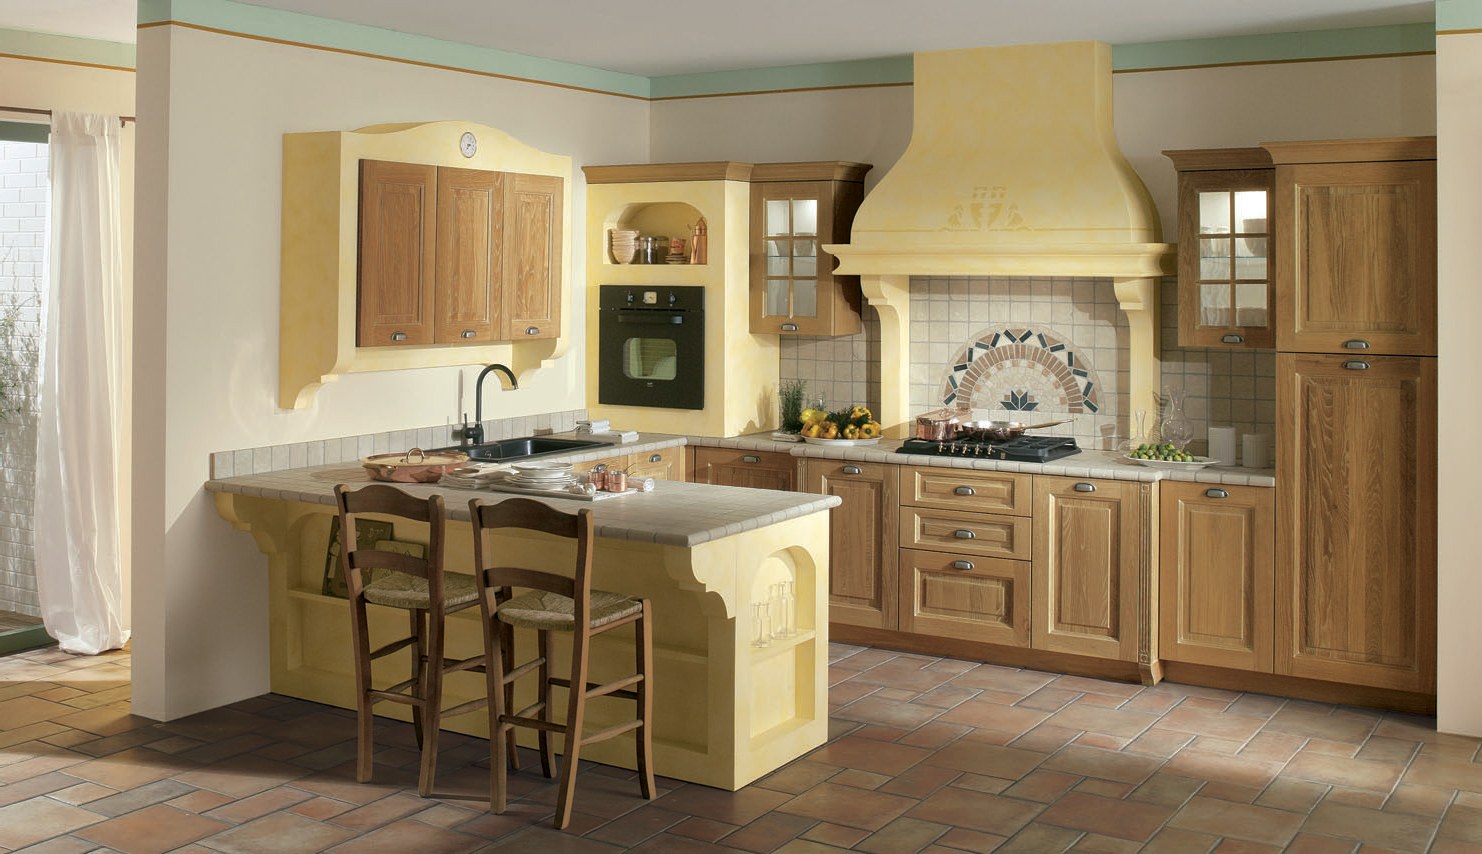 exterior plan paint your kitchen cabinets yellow for a bright look